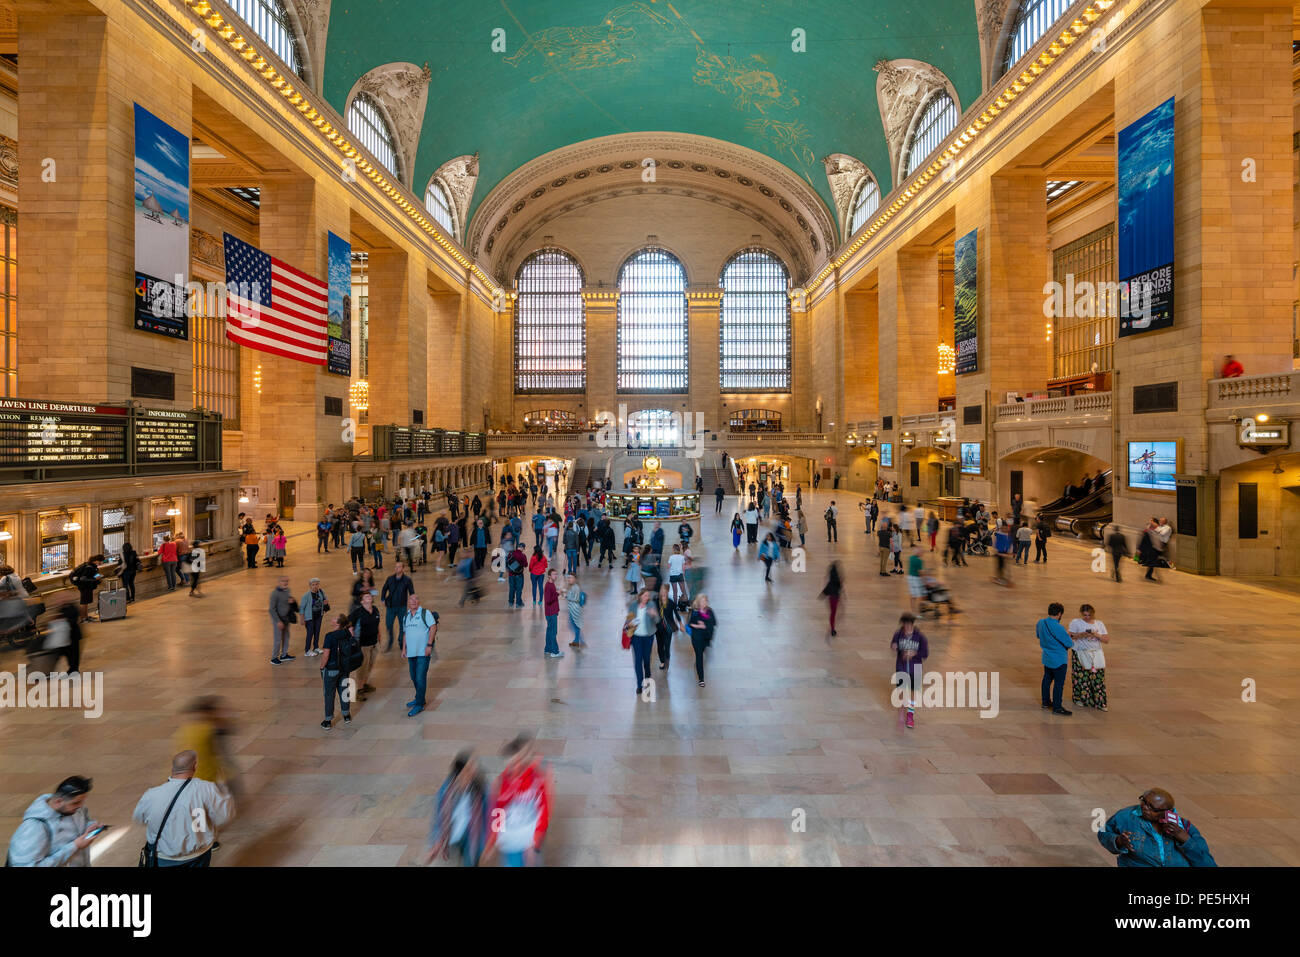 Commuters at Grand Central Station in New York - Stock Image